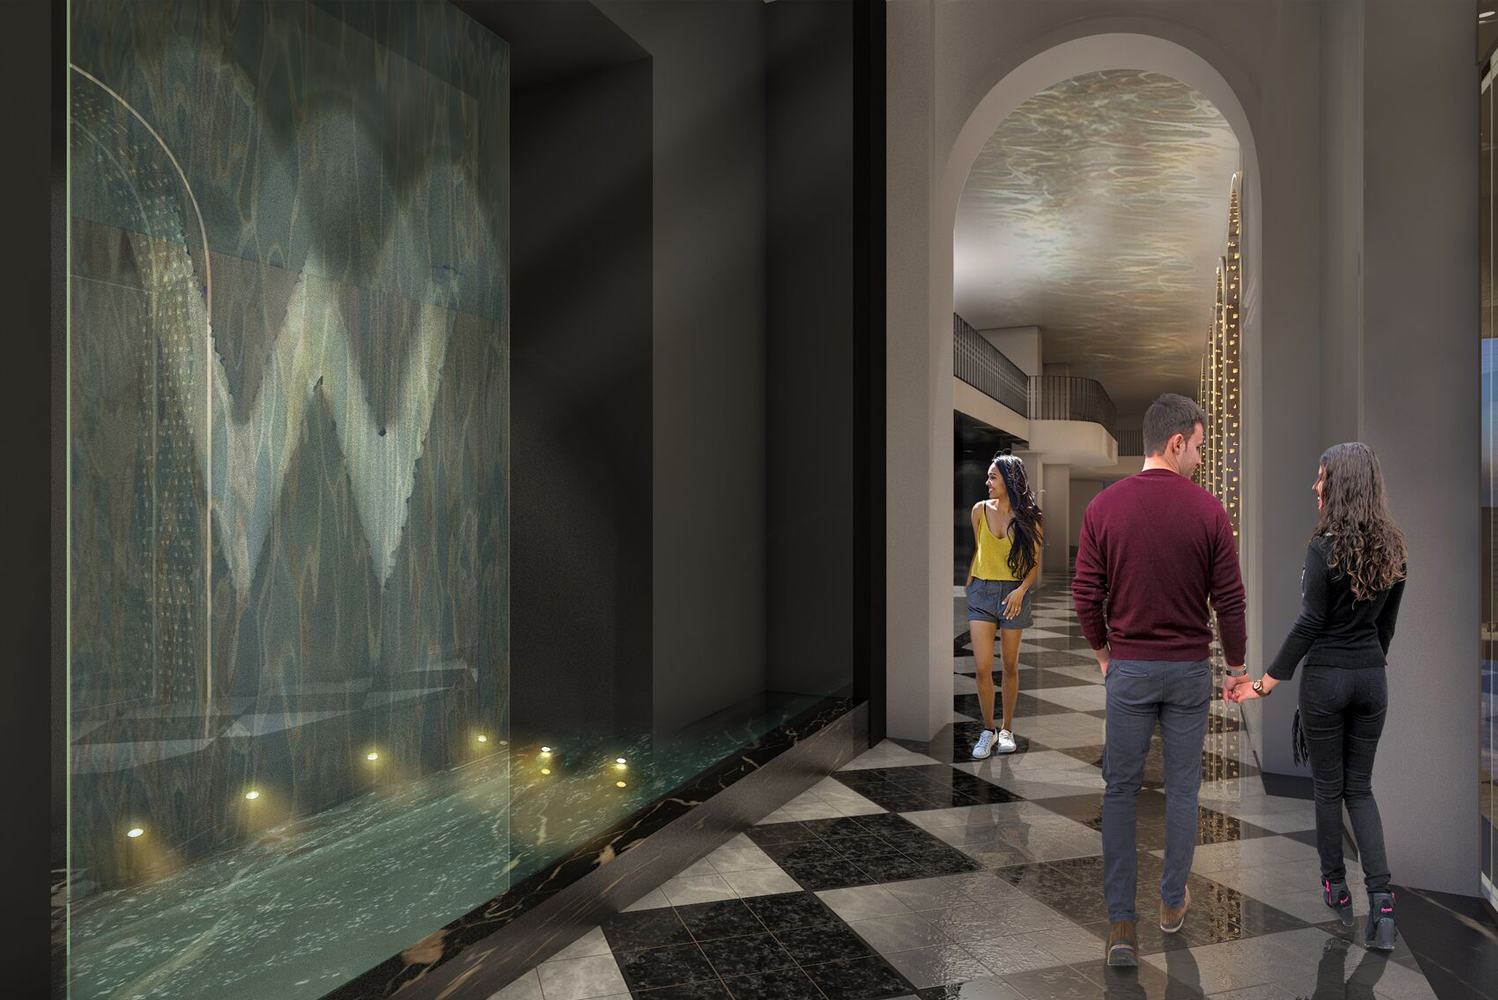 W Washington DC, the closest hotel to The White House, is undergoing a $50 million transformation that is scheduled to be completed in 2019.